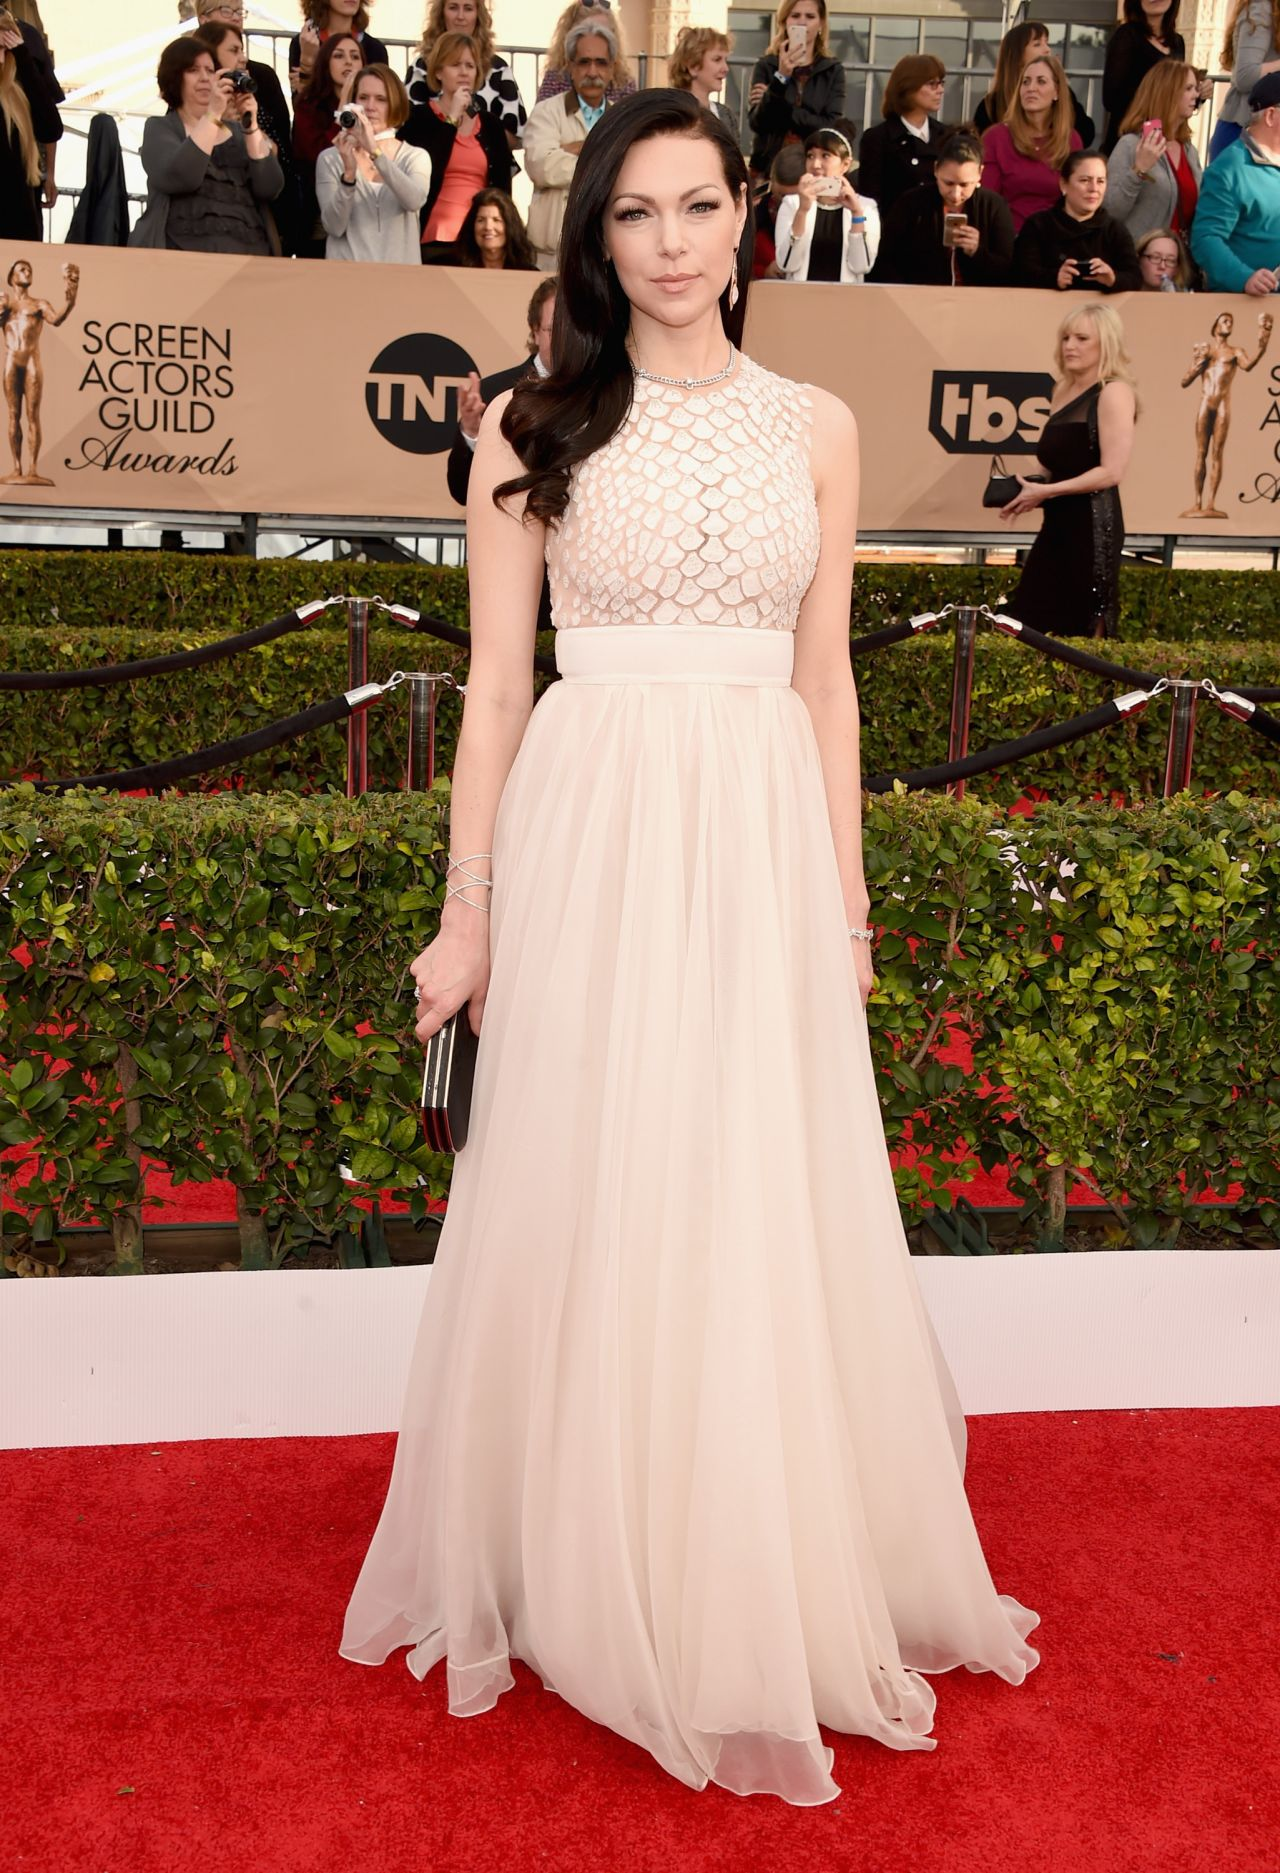 laura-prepon-sag-awards-2016-at-shrine-auditorium-in-los-angeles-1